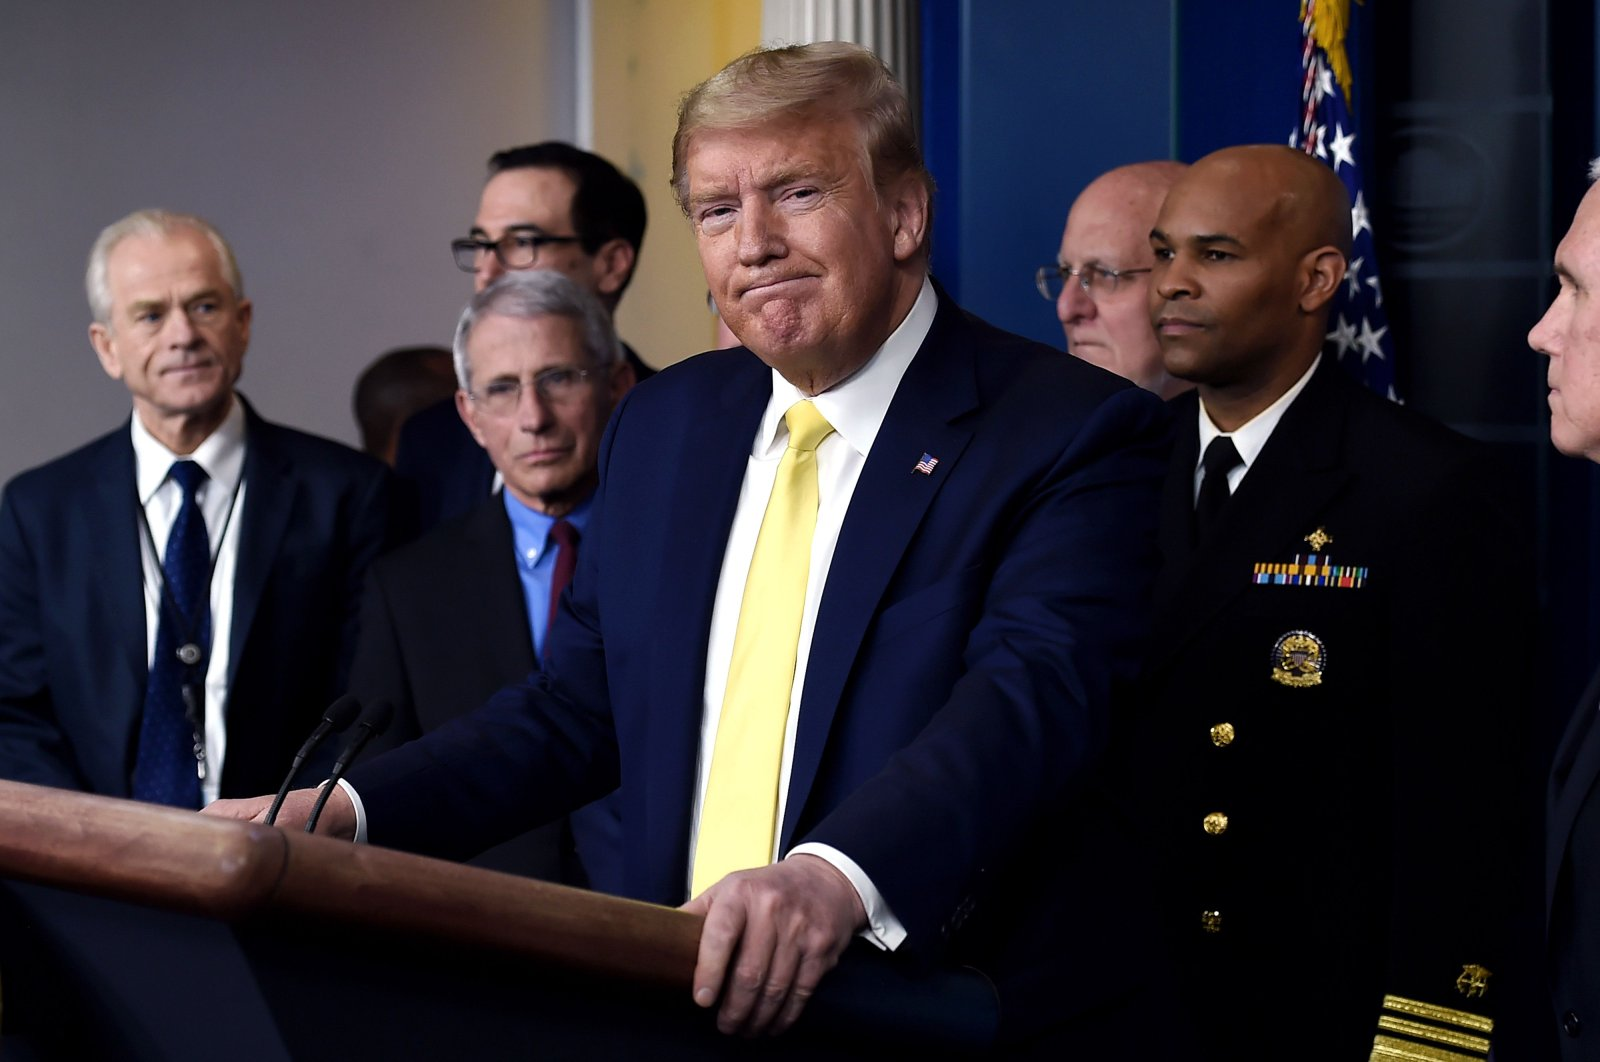 U.S. President Donald Trump speaks about the pandemic alongside members of the Coronavirus Task Force in the Brady Press Briefing Room at the White House, Washington, D.C., March 9, 2020. (AFP Photo)